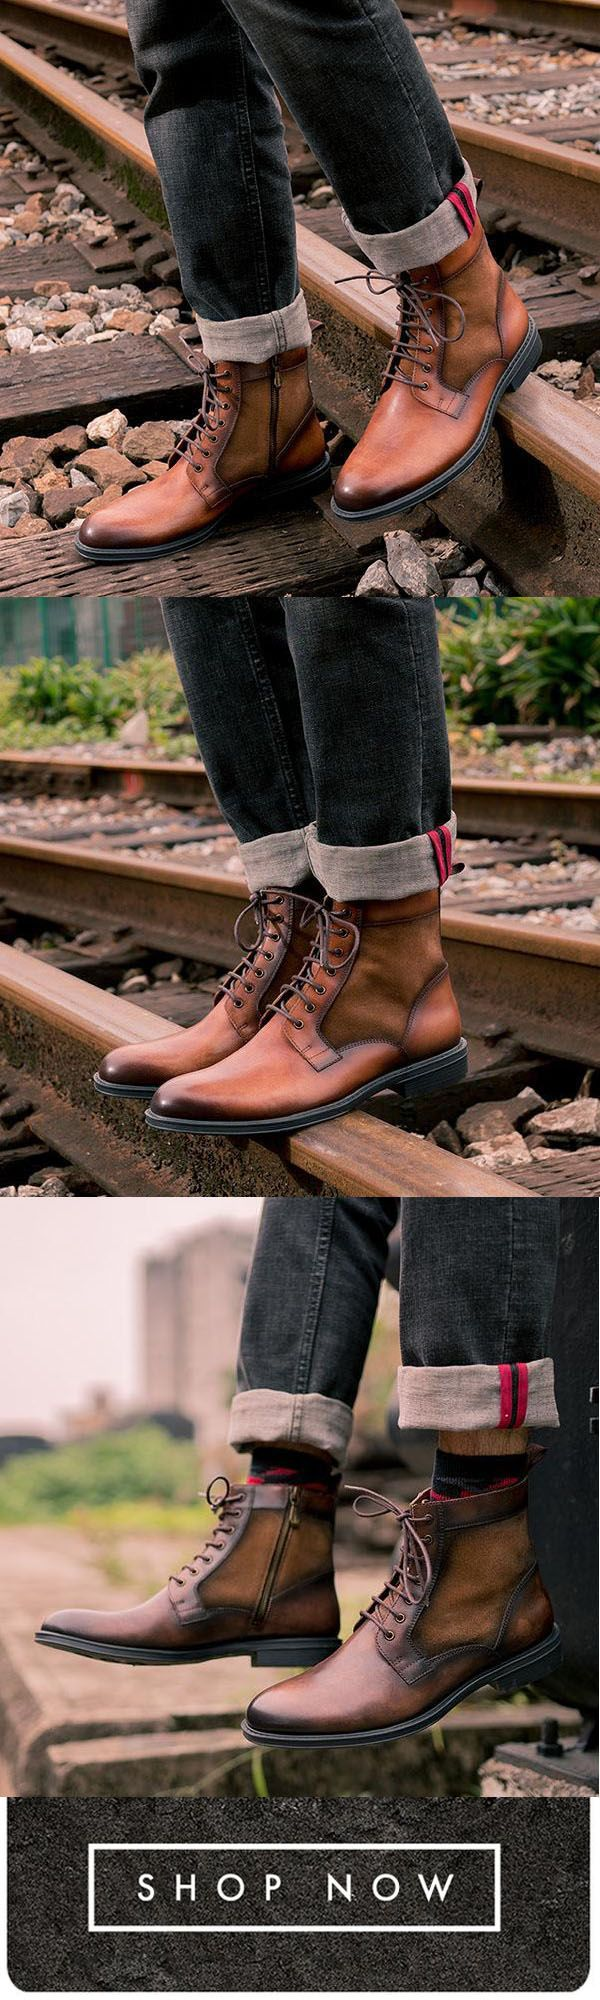 13091fd69245f Florychic Men s Fashion Vintage Lace Up Ankle Boots